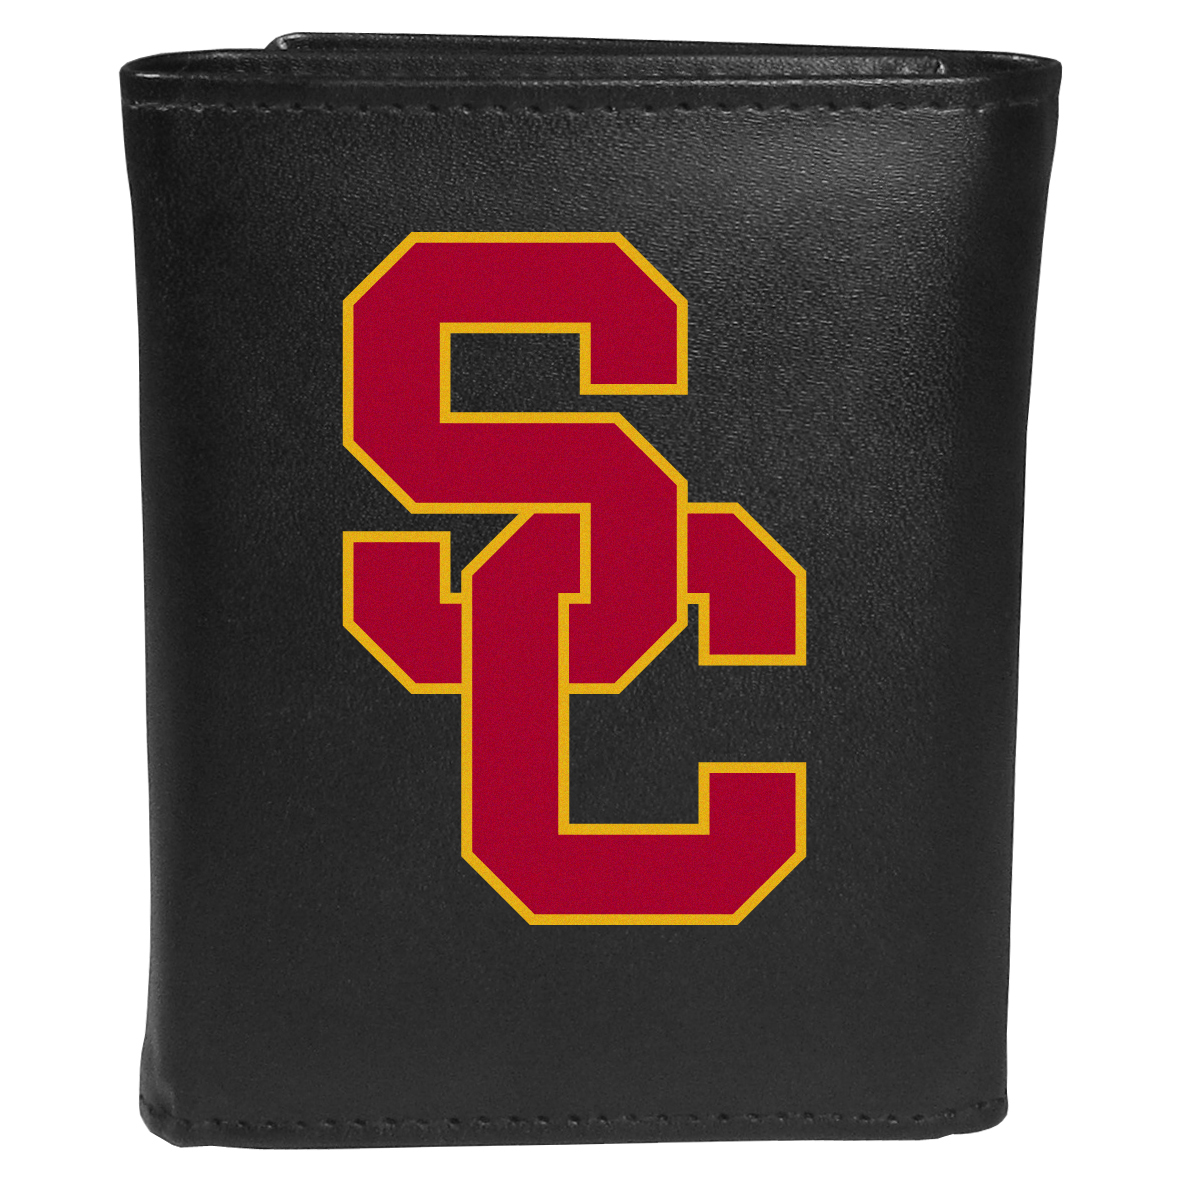 USC Trojans Tri-fold Wallet Large Logo - Sports fans do not have to sacrifice style with this classic tri-fold wallet that sports theUSC Trojans?extra large logo. This men's fashion accessory has a leather grain look and expert craftmanship for a quality wallet at a great price. The wallet features inner credit card slots, windowed ID slot and a large billfold pocket. The front of the wallet features an extra large printed team logo.